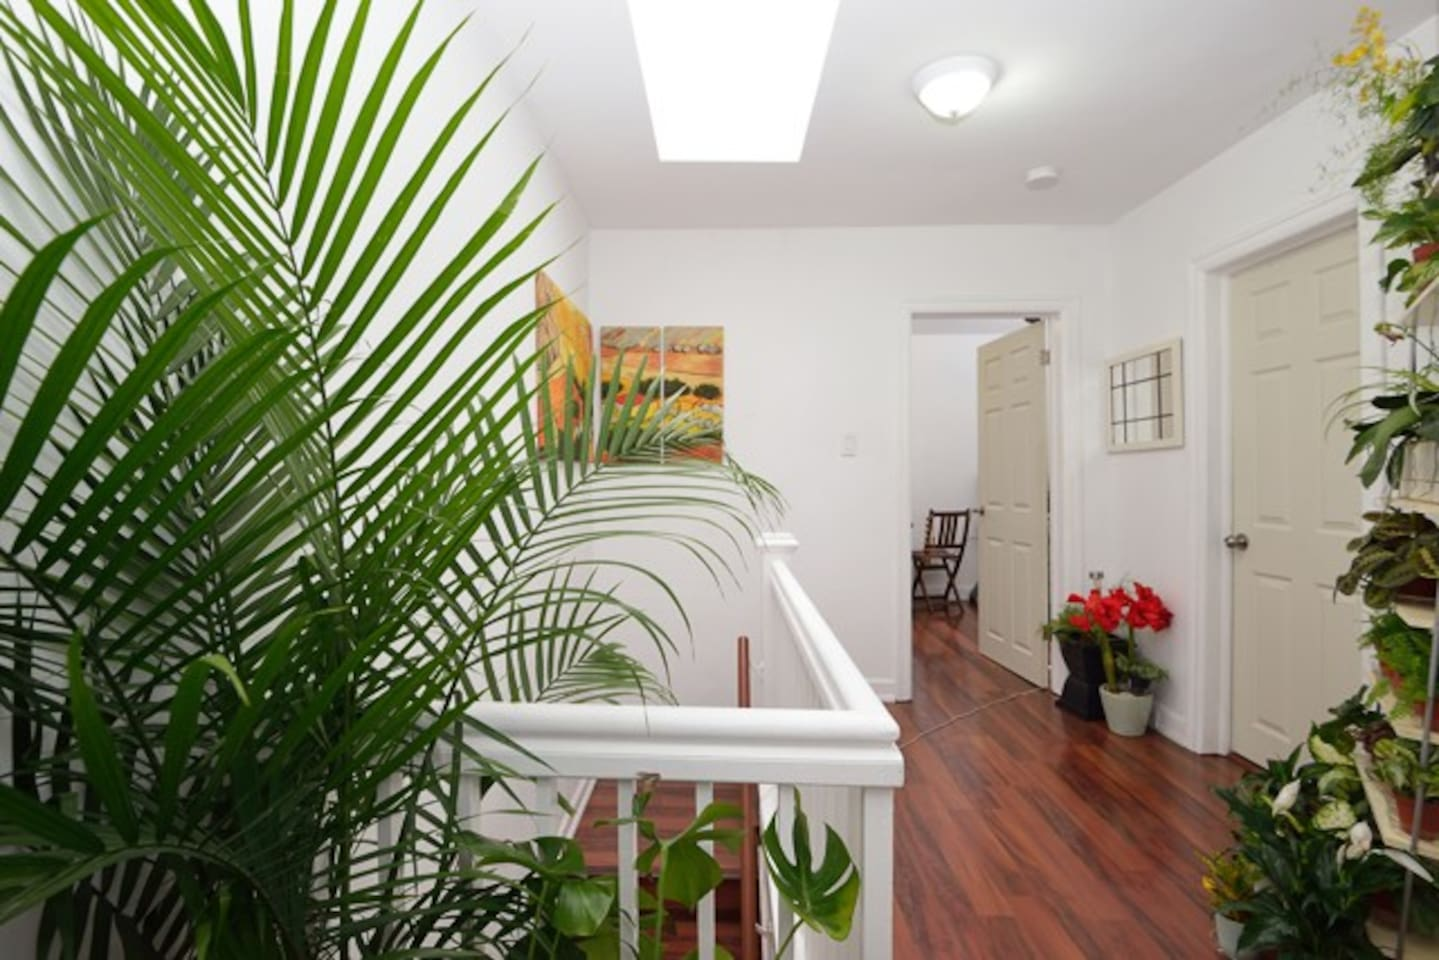 Hallway to Bedrooms and Bathroom, Skylight and Mini Garden